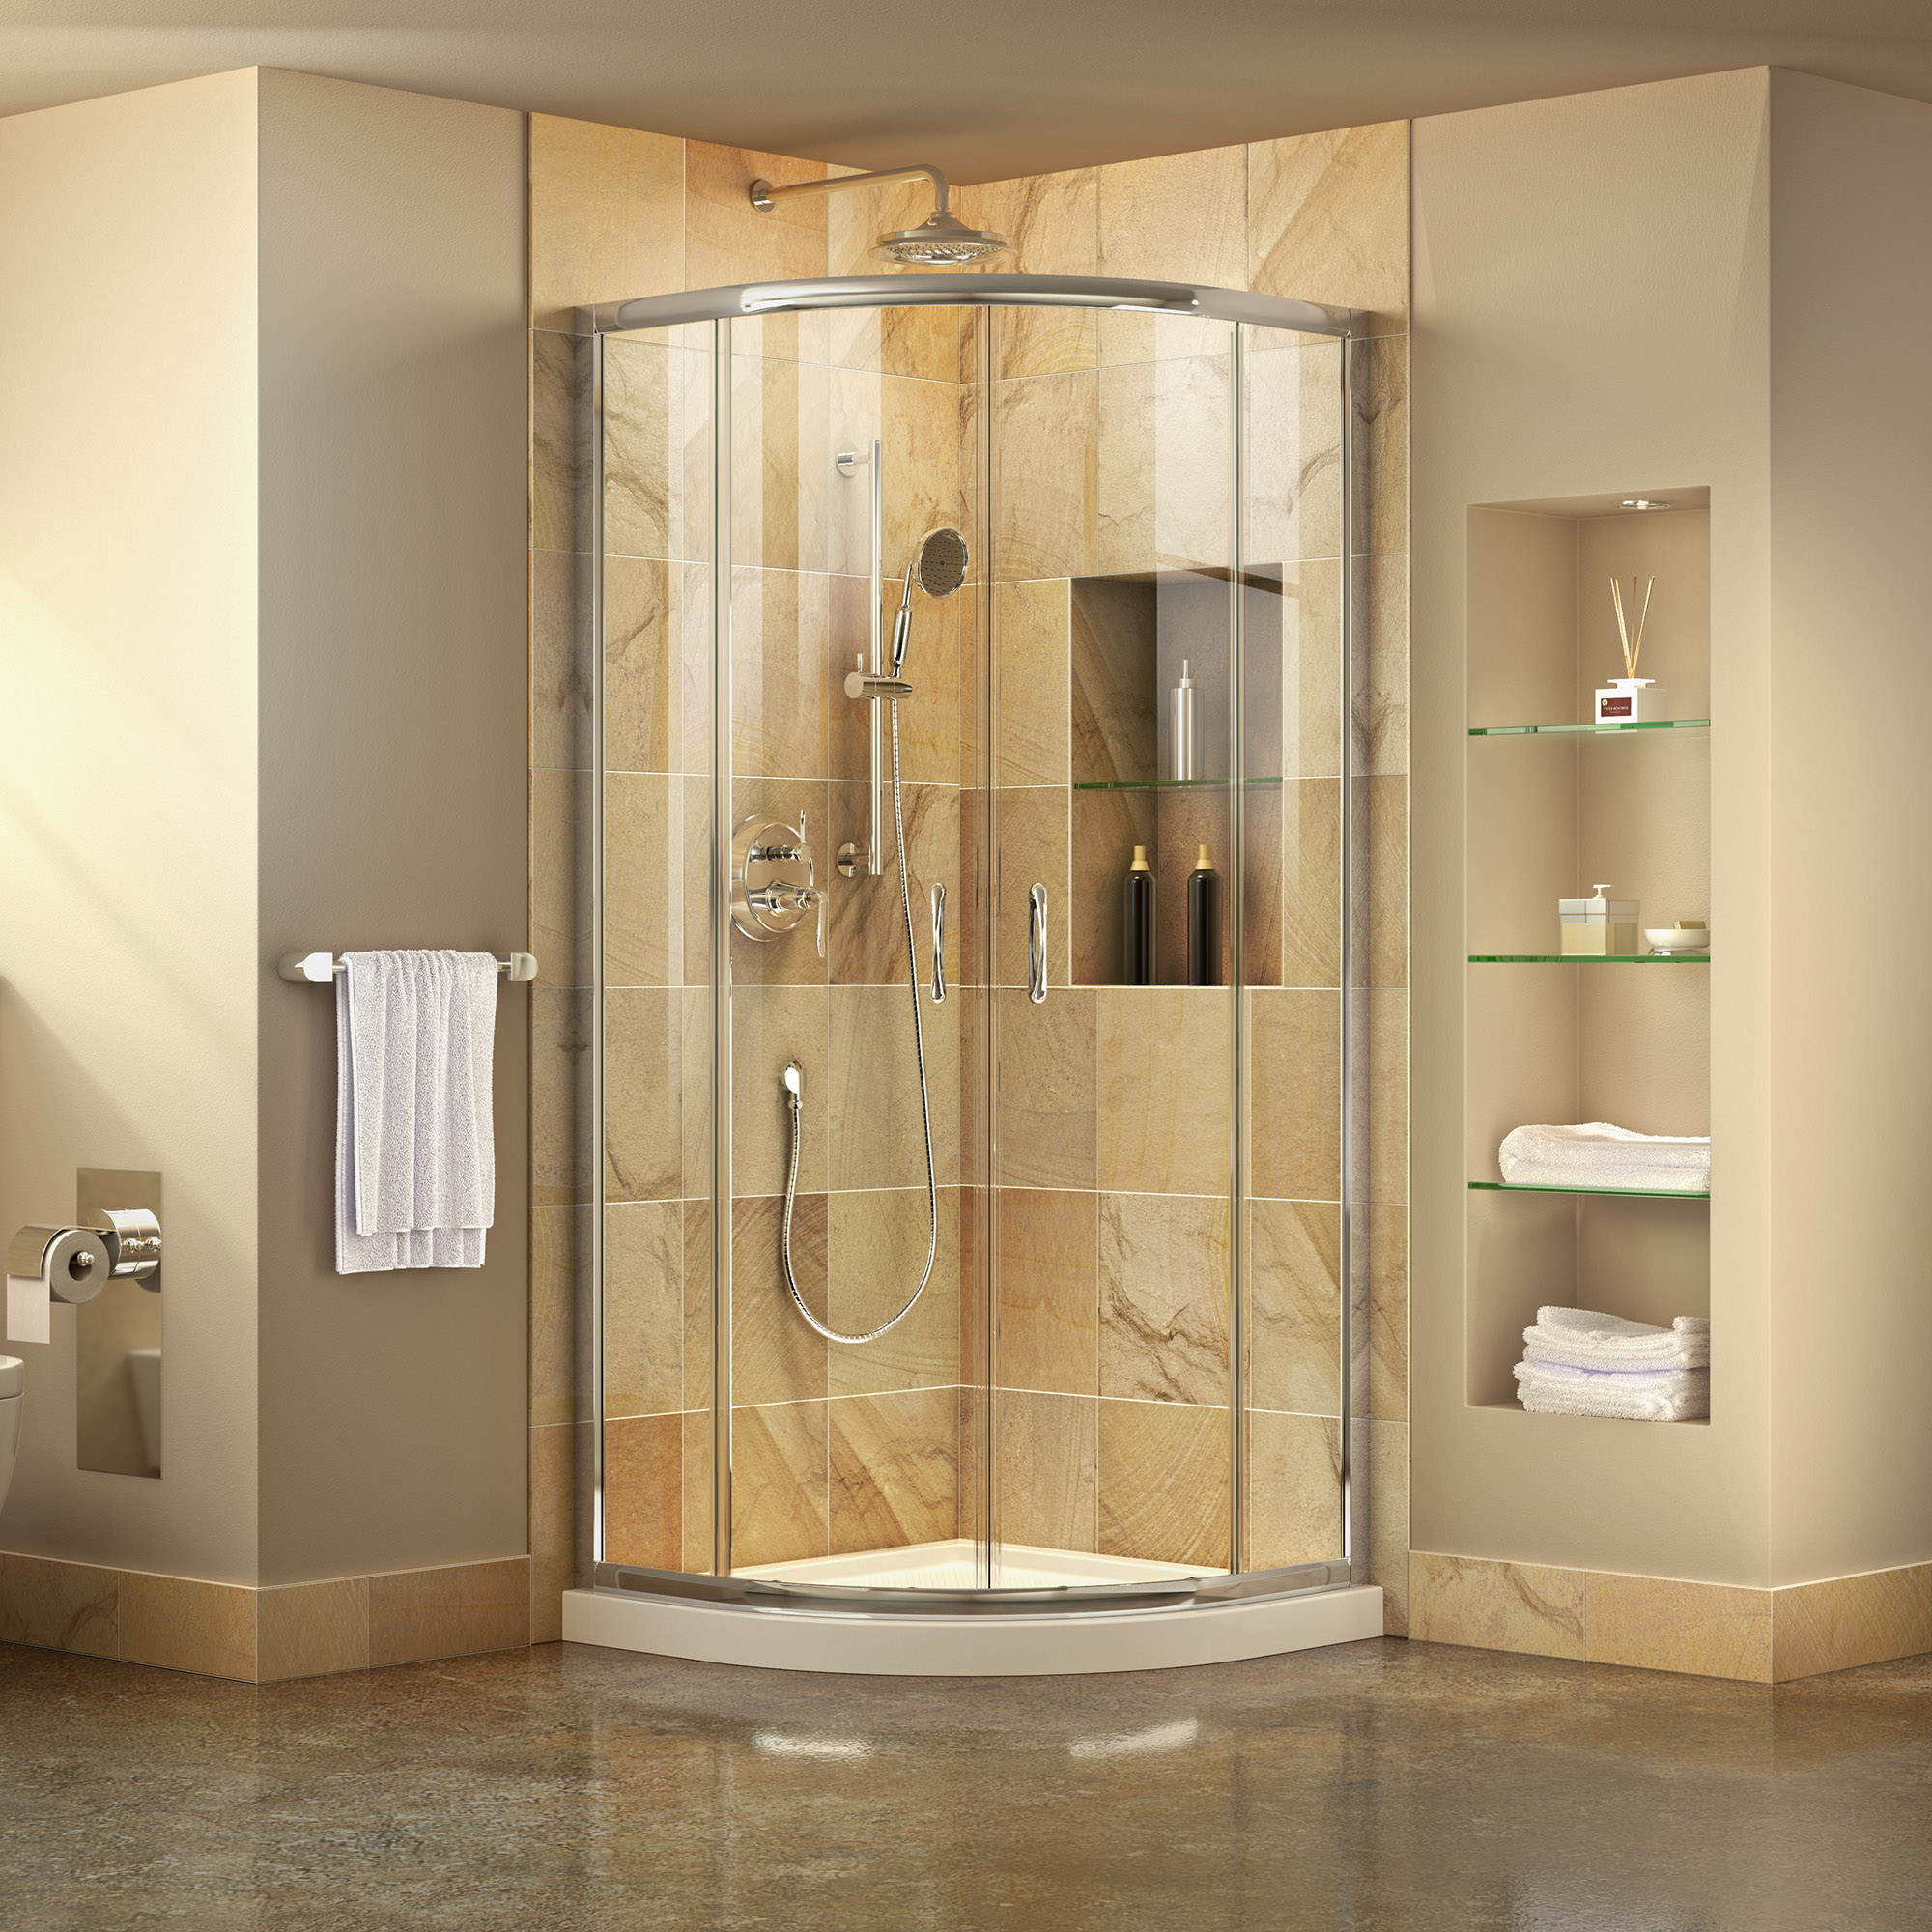 "Prime 36 3/8"" by 36 3/8"" Frameless Sliding Shower Enclosure, Base & QWALL-4 Shower Backwall Kit"